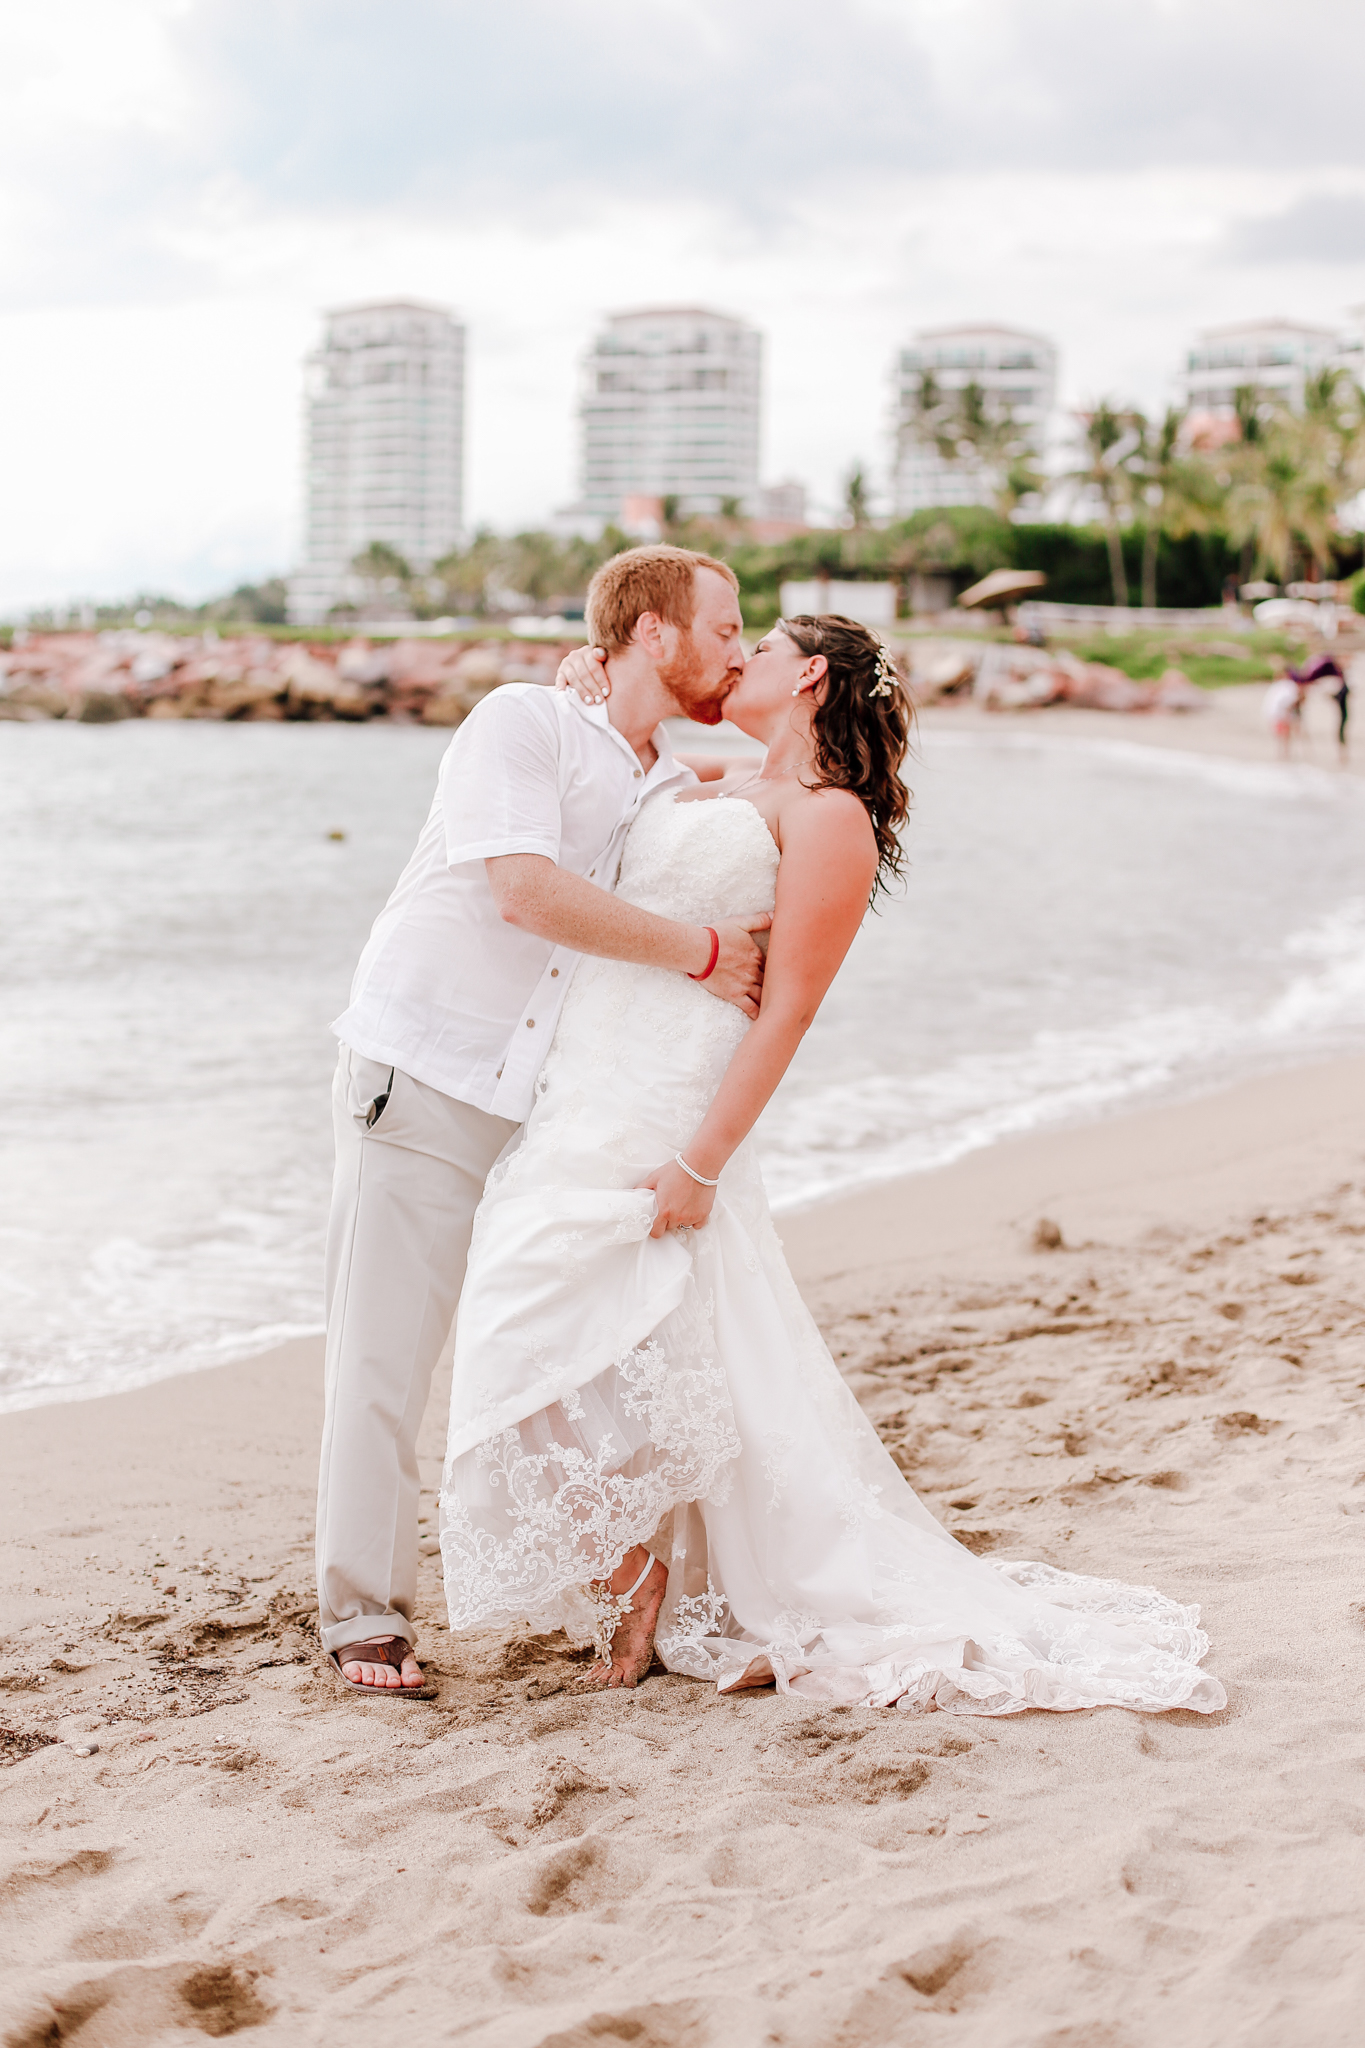 Tiffany and Ryan - Puerto Vallarta Wedding Photographer - 105.jpg